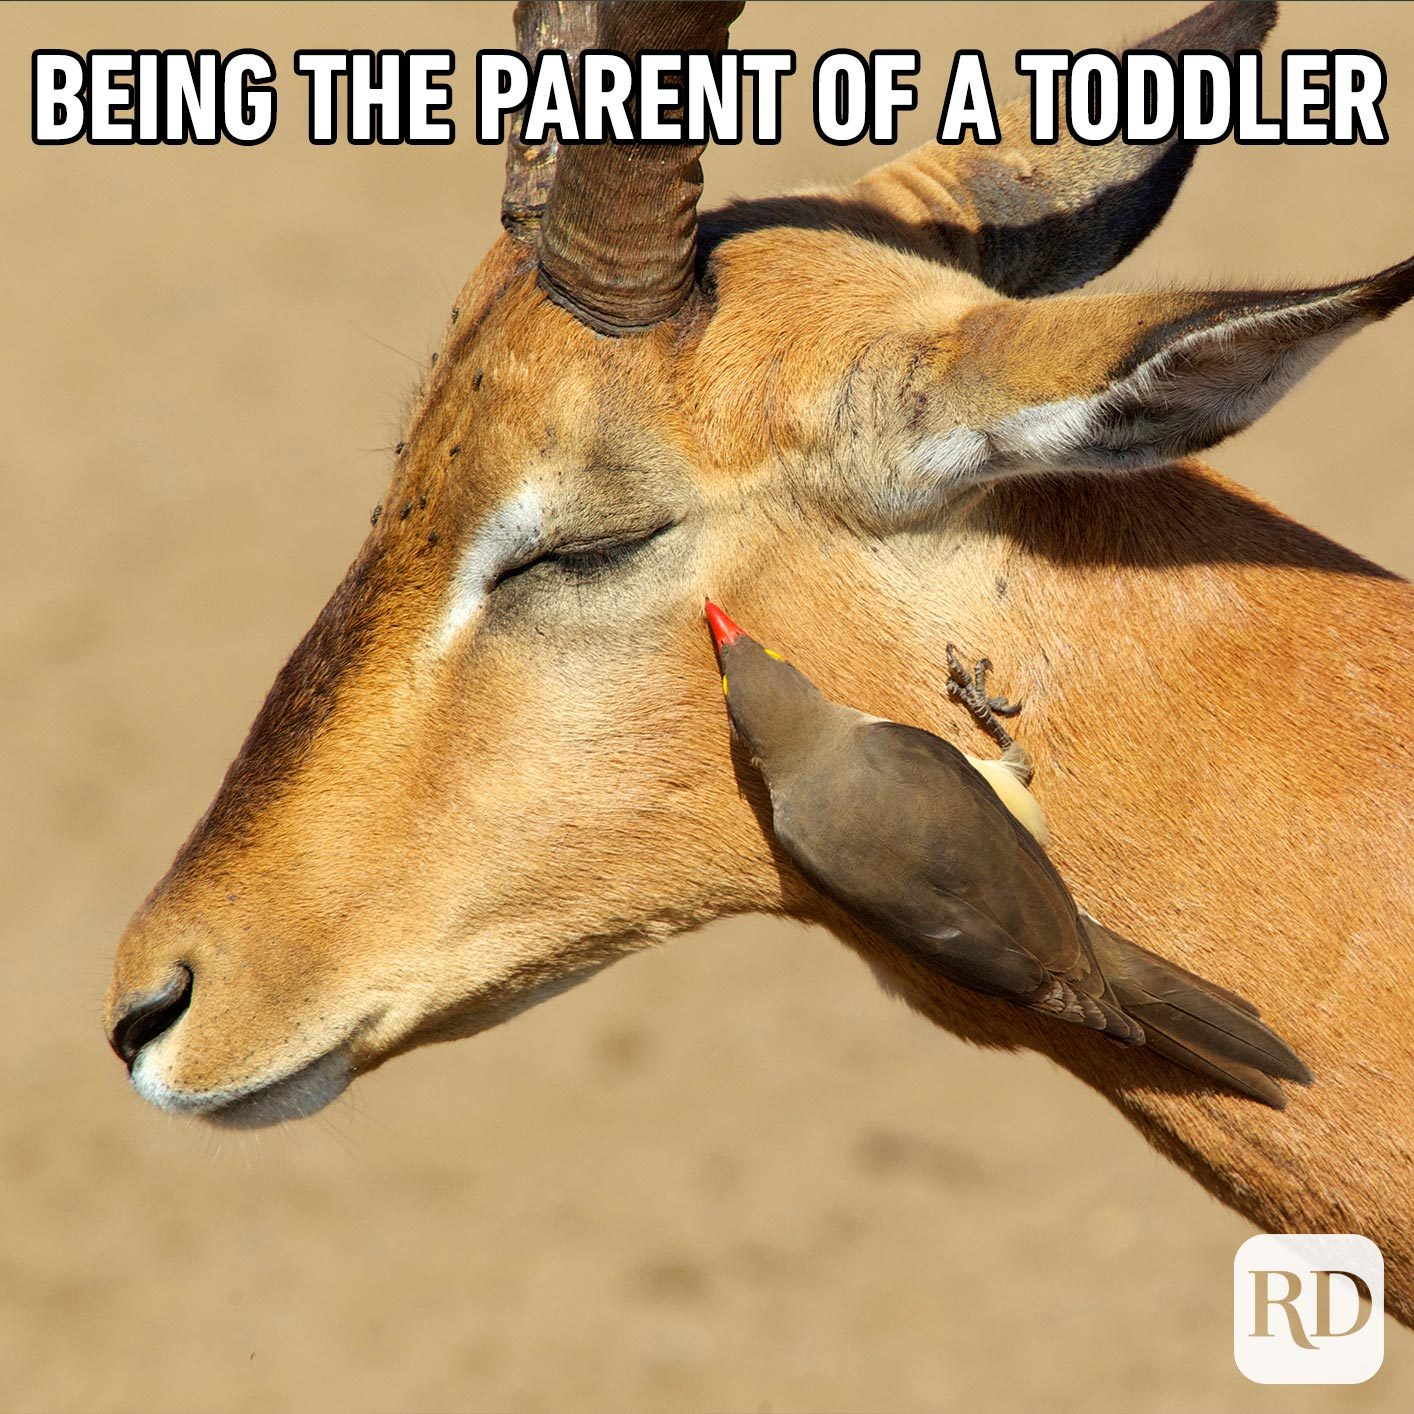 Deer being pecked in the eye by a small bird. MEME TEXT: Being the parent of a toddler